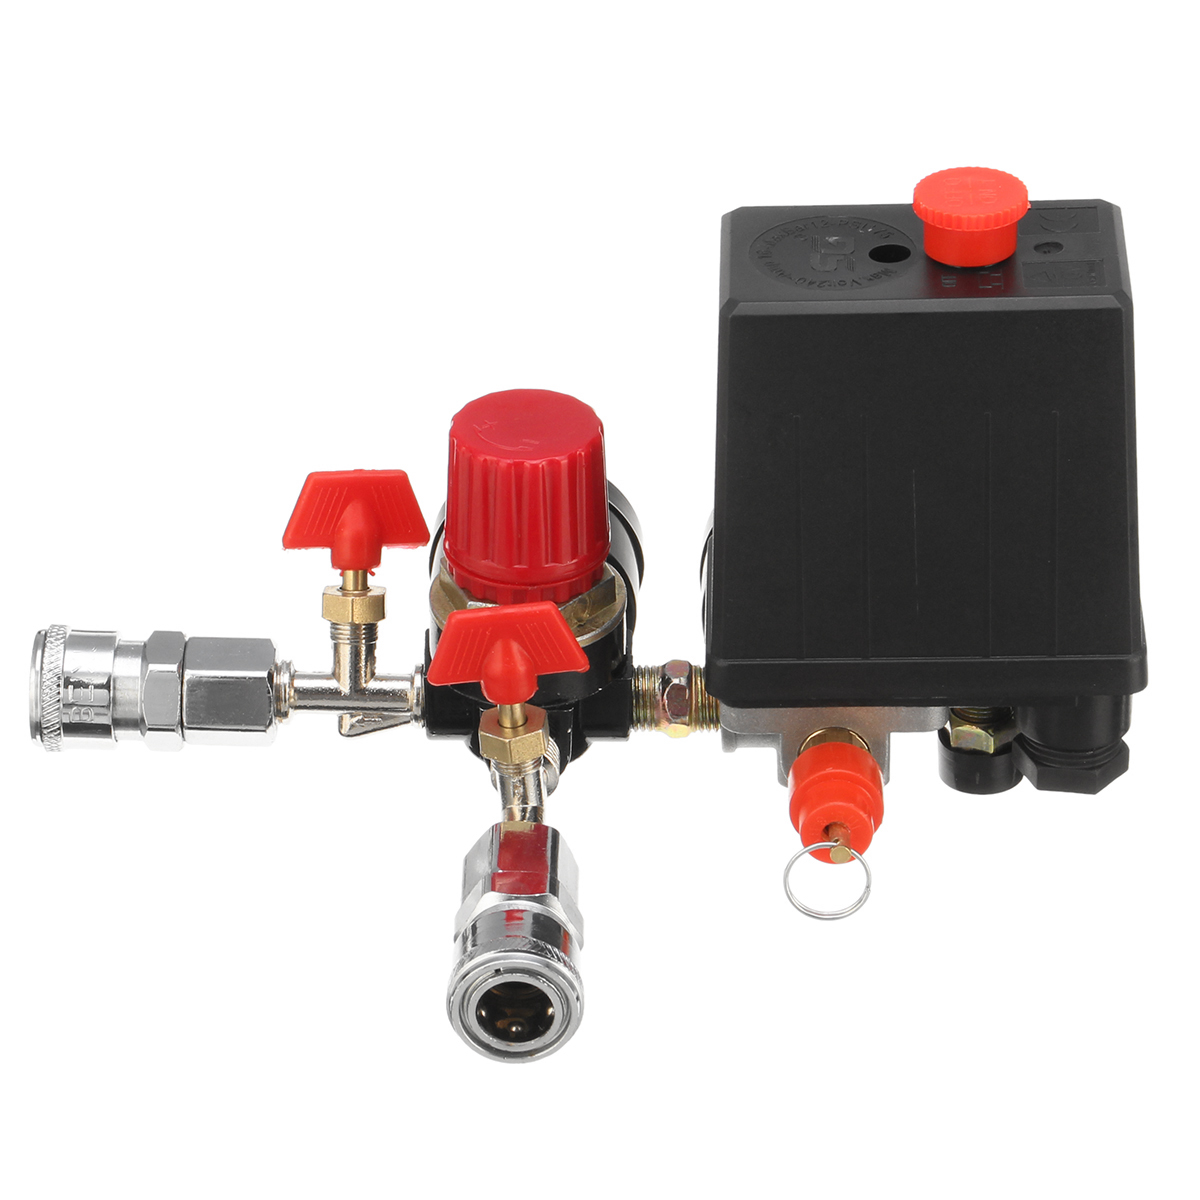 Air Compressor Pressure Switch Control Valve Manifold Relief Regulator Gauge With Quick Connector